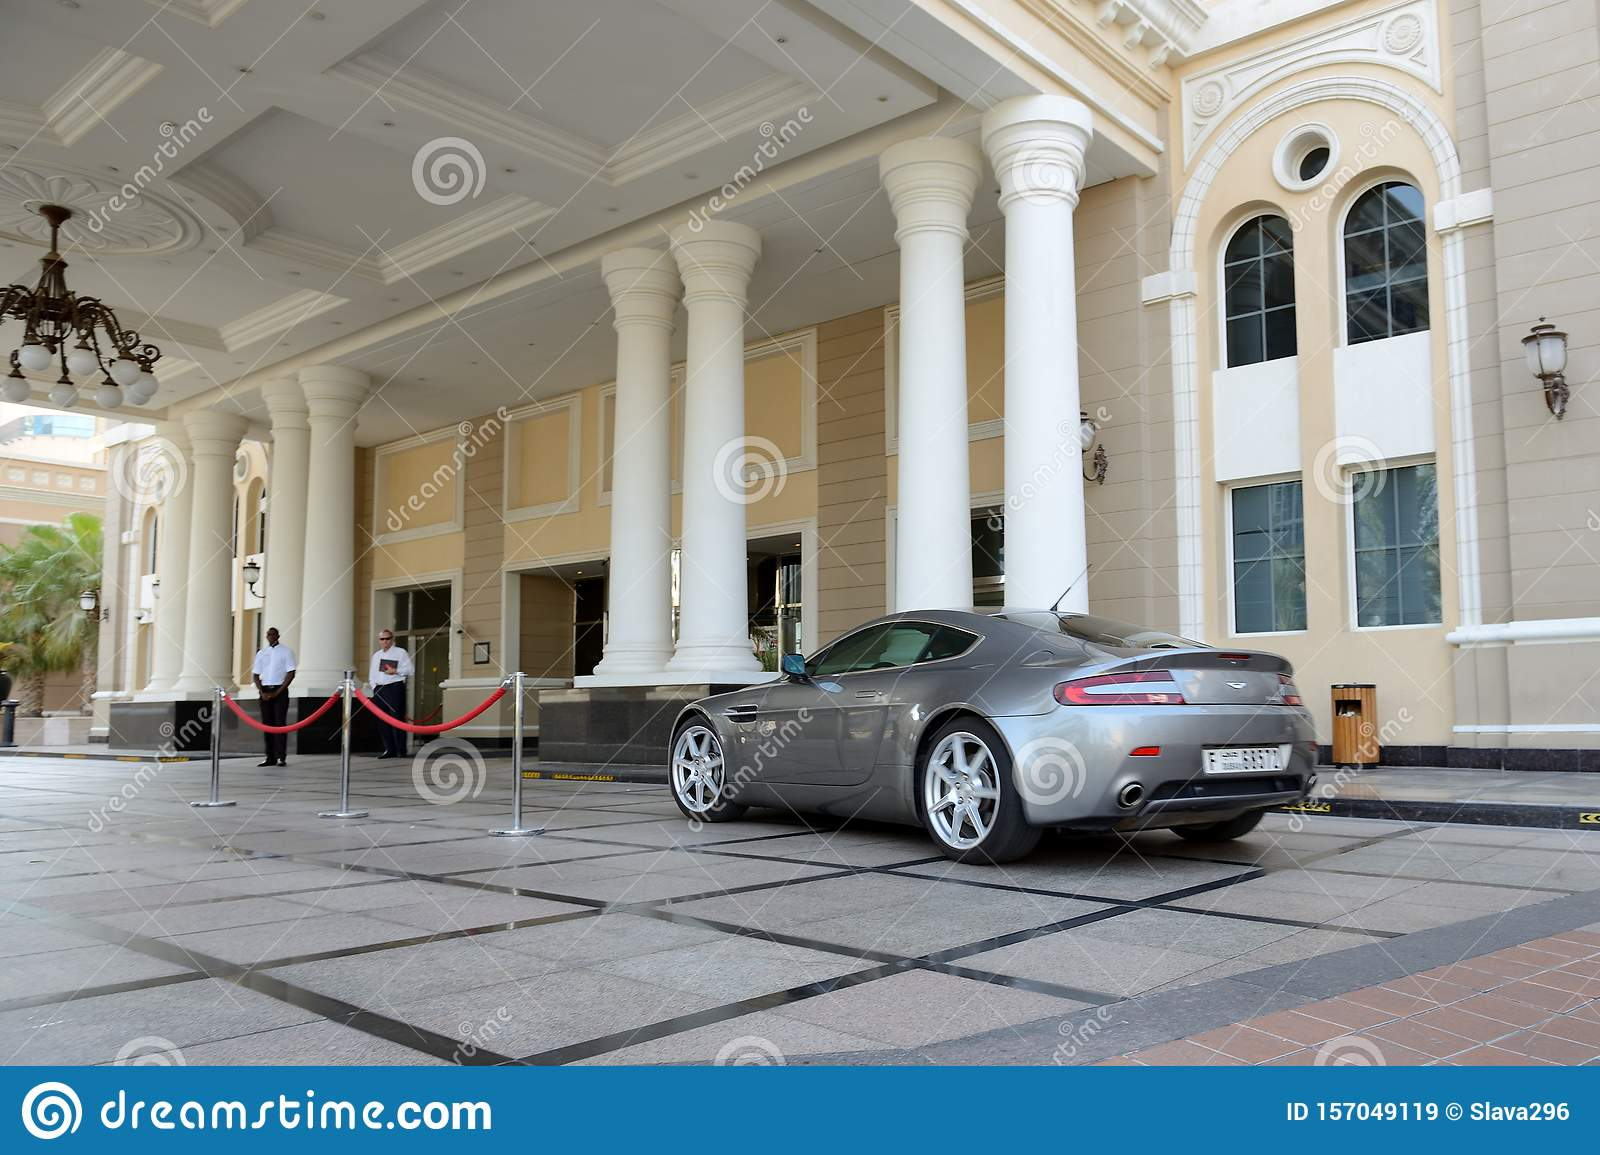 The Westin Hotel And Aston Martin Vantage Sport Car Editorial Stock Image Image Of Sport View 157049119